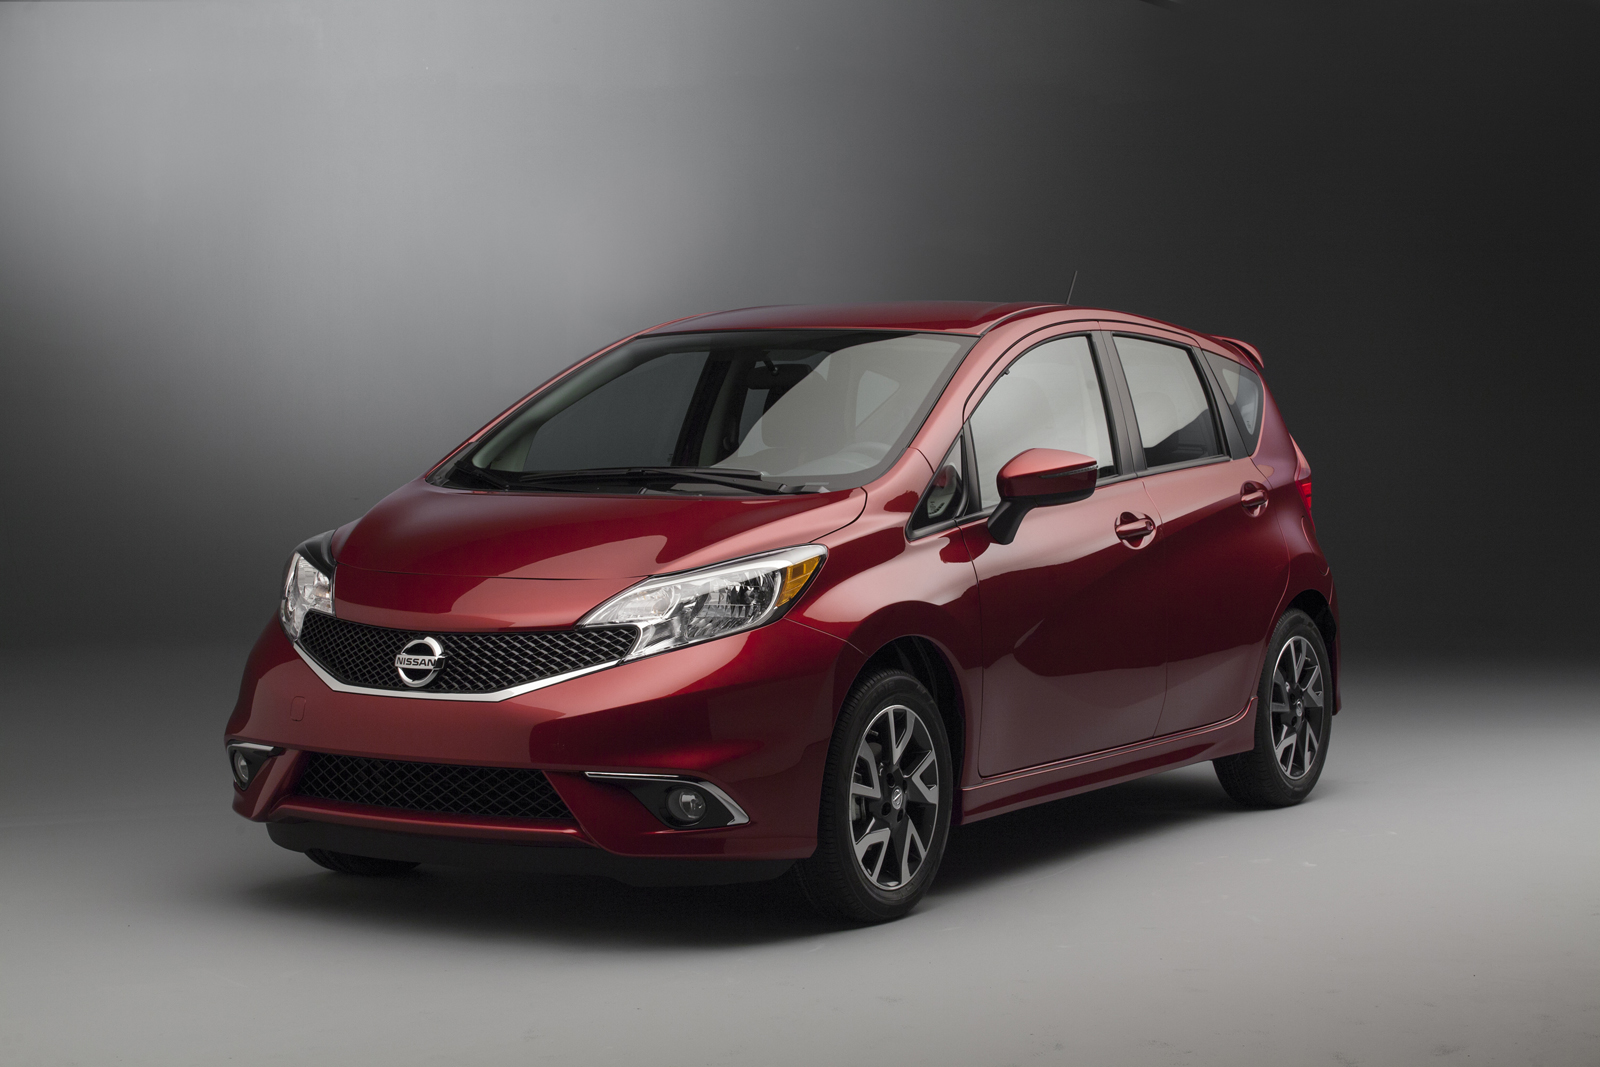 2015 nissan versa note us pricing autonews 1. Black Bedroom Furniture Sets. Home Design Ideas